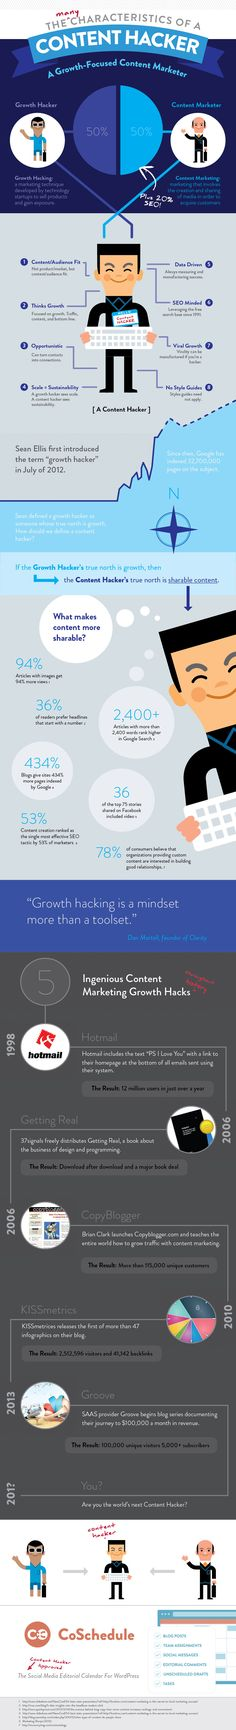 Everything You Need To Know About Content Hacking - #infographic #contentmarketing